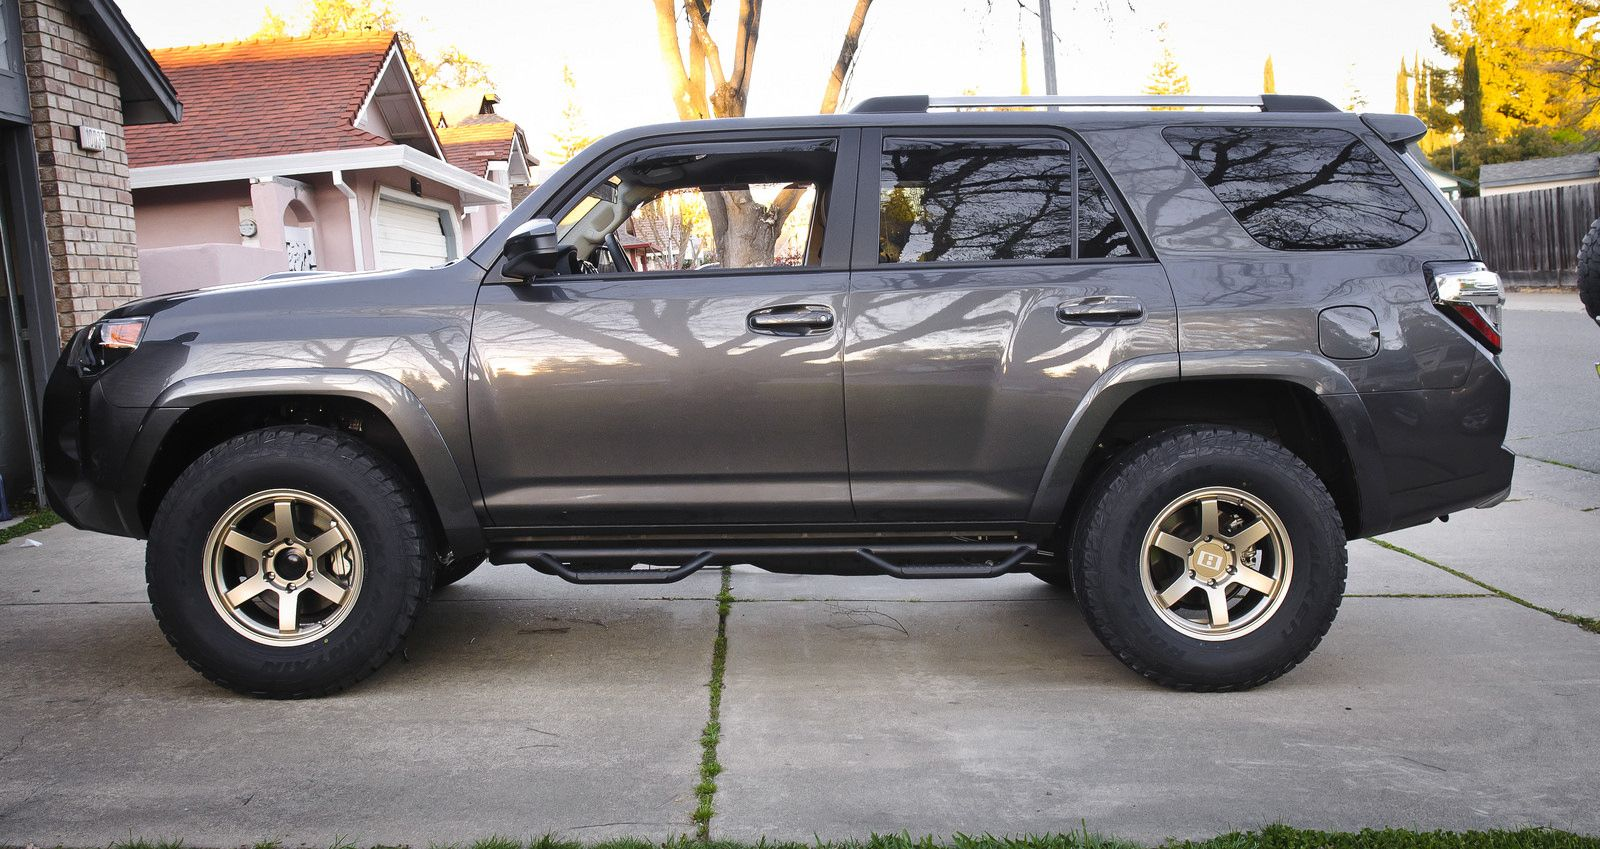 2017 4runner trd pro page 2 toyota 4runner forum largest 4runner - 5th Gen T4r Picture Gallery Page 200 Toyota 4runner Forum Largest 4runner Forum